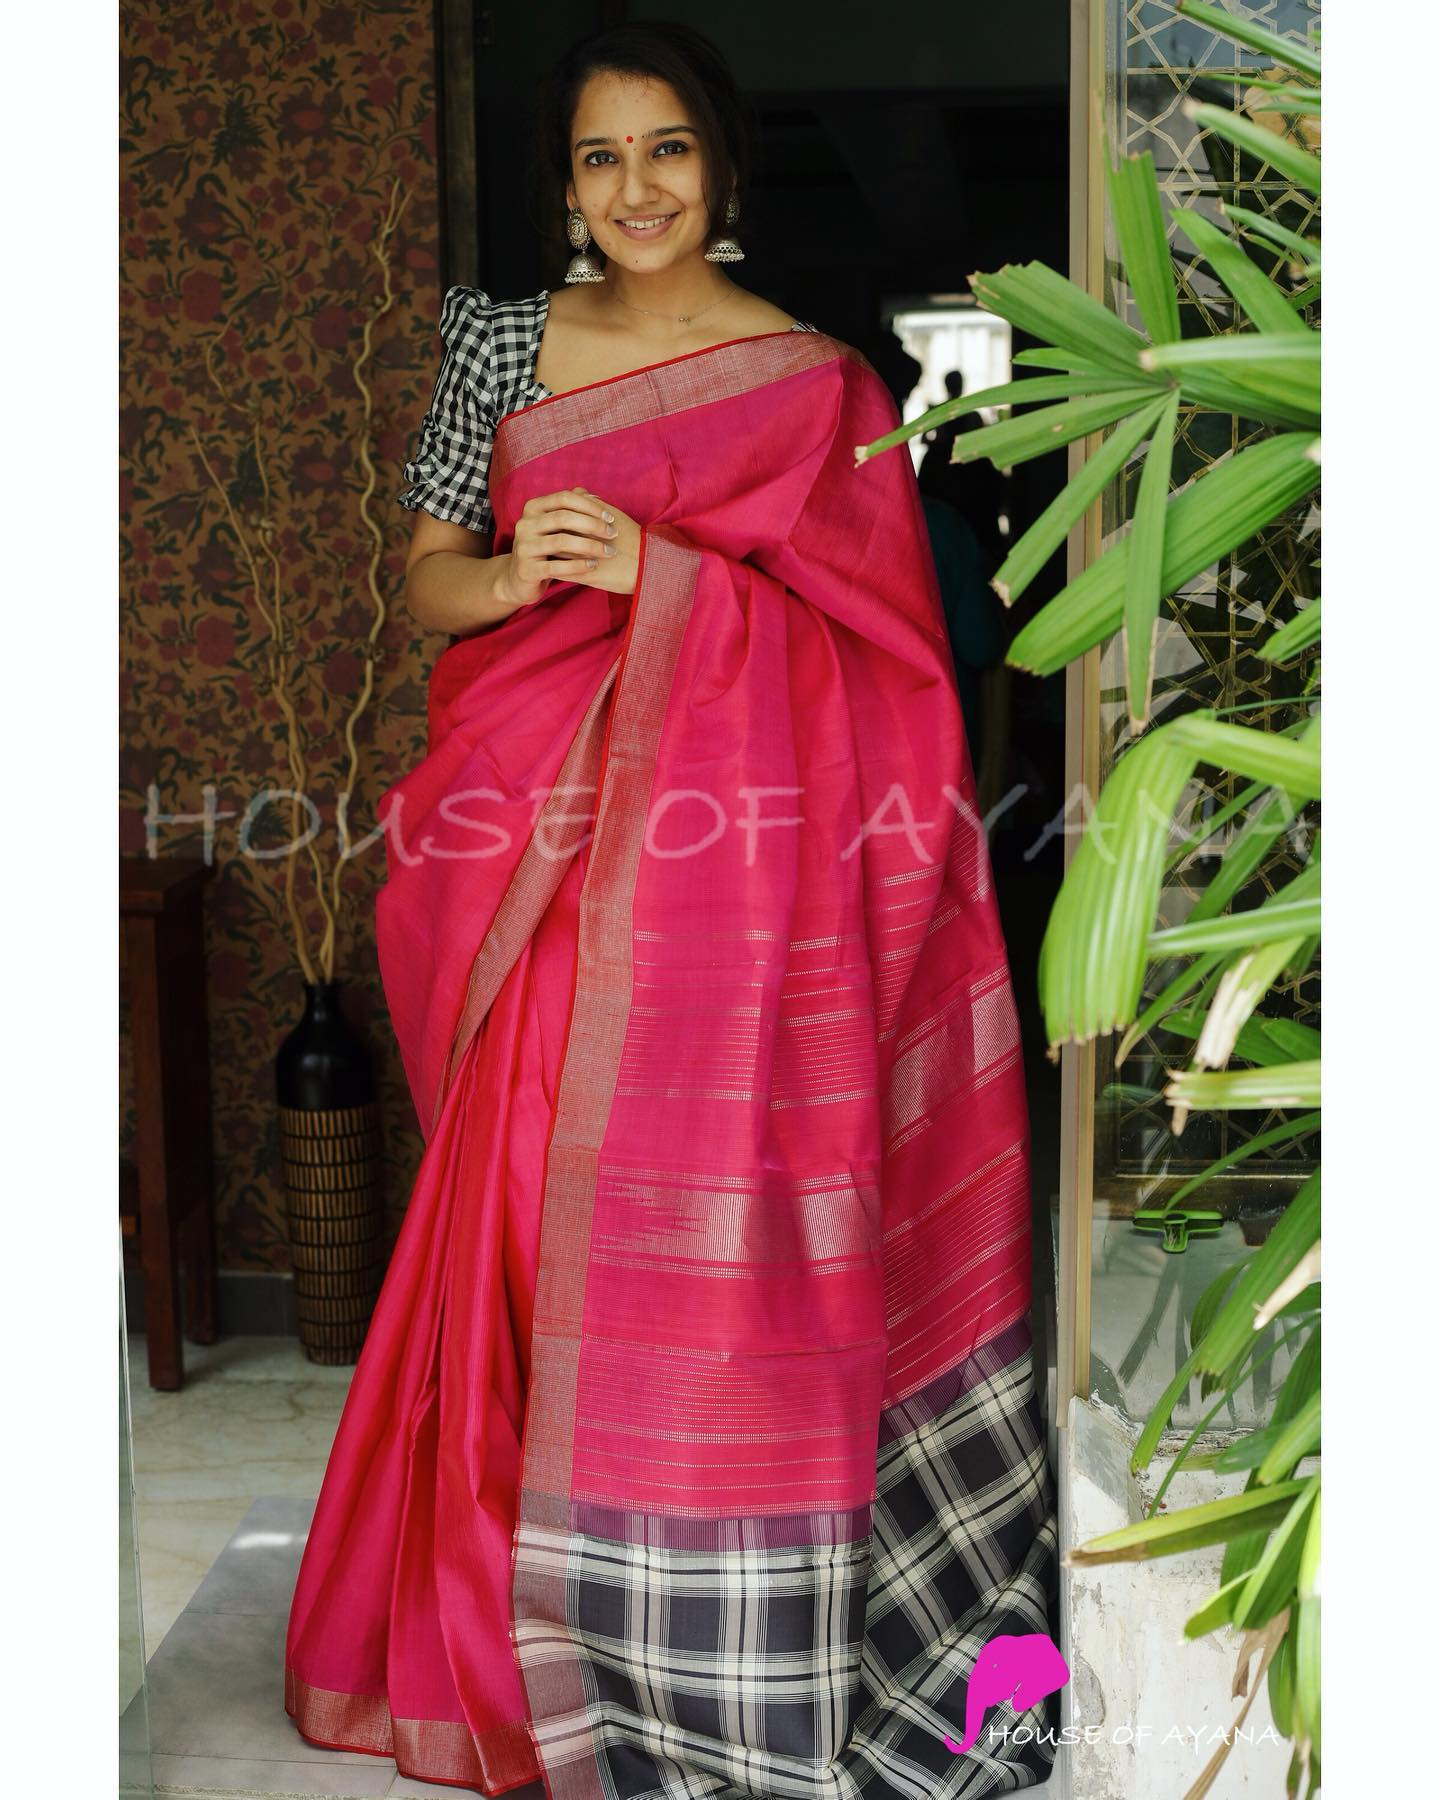 Saree: Kanjivaram silk saree handwoven with contrast checked pallu and silver zari borders in jute finish. Blouse: Black and White checked silk blouse with coordinated borders . Price : Rs. 13699.00. 2021-08-05